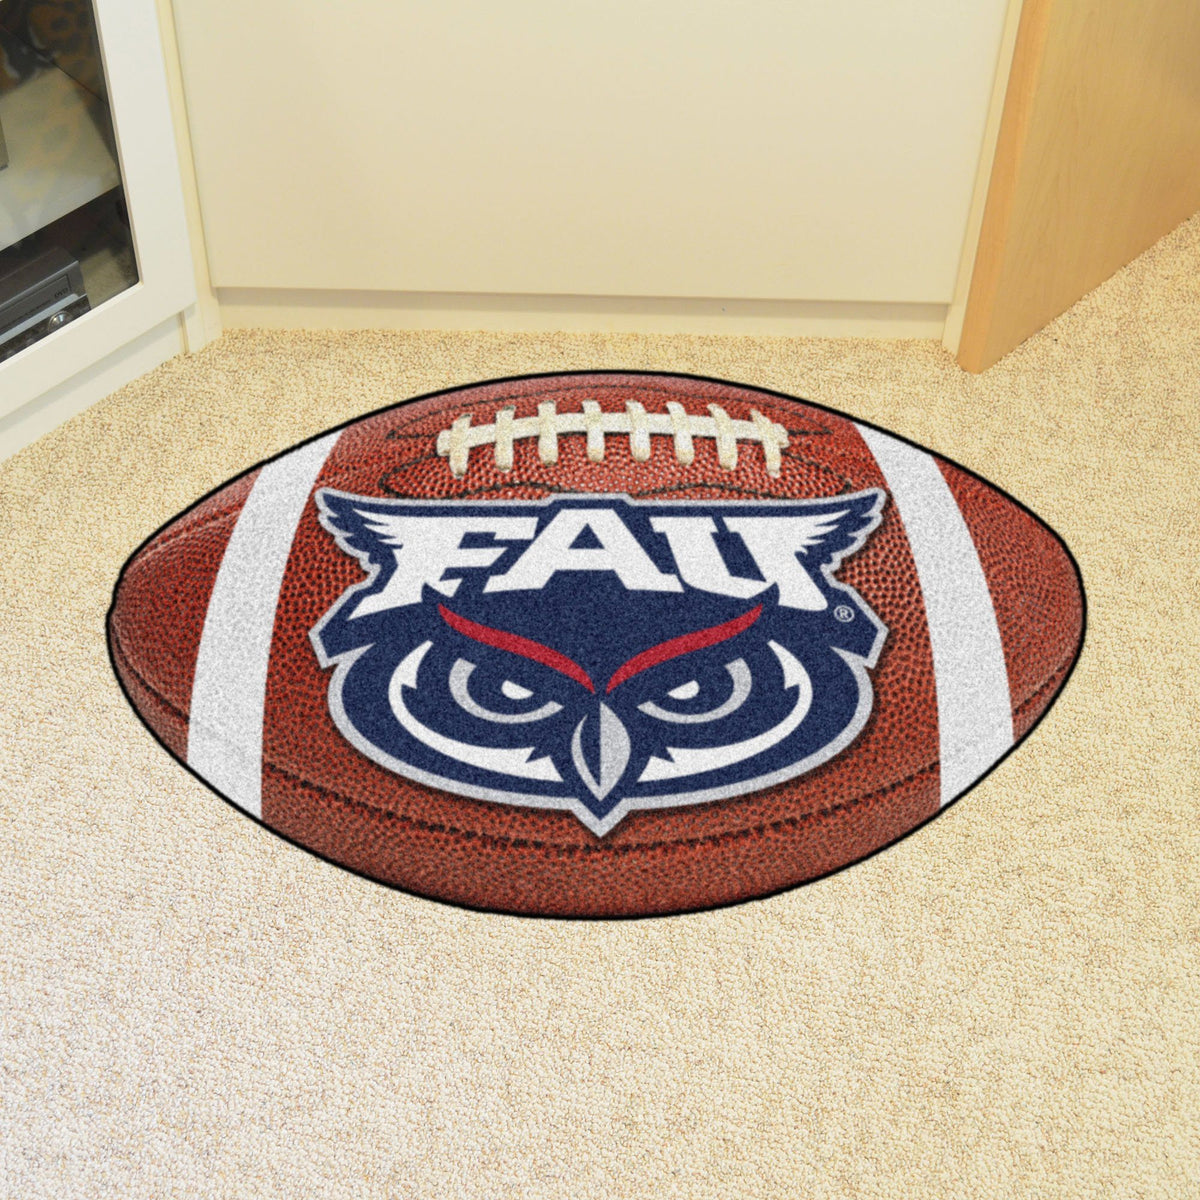 Collegiate - Football Mat: A - K Collegiate Mats, Rectangular Mats, Football Mat, Collegiate, Home Fan Mats FAU